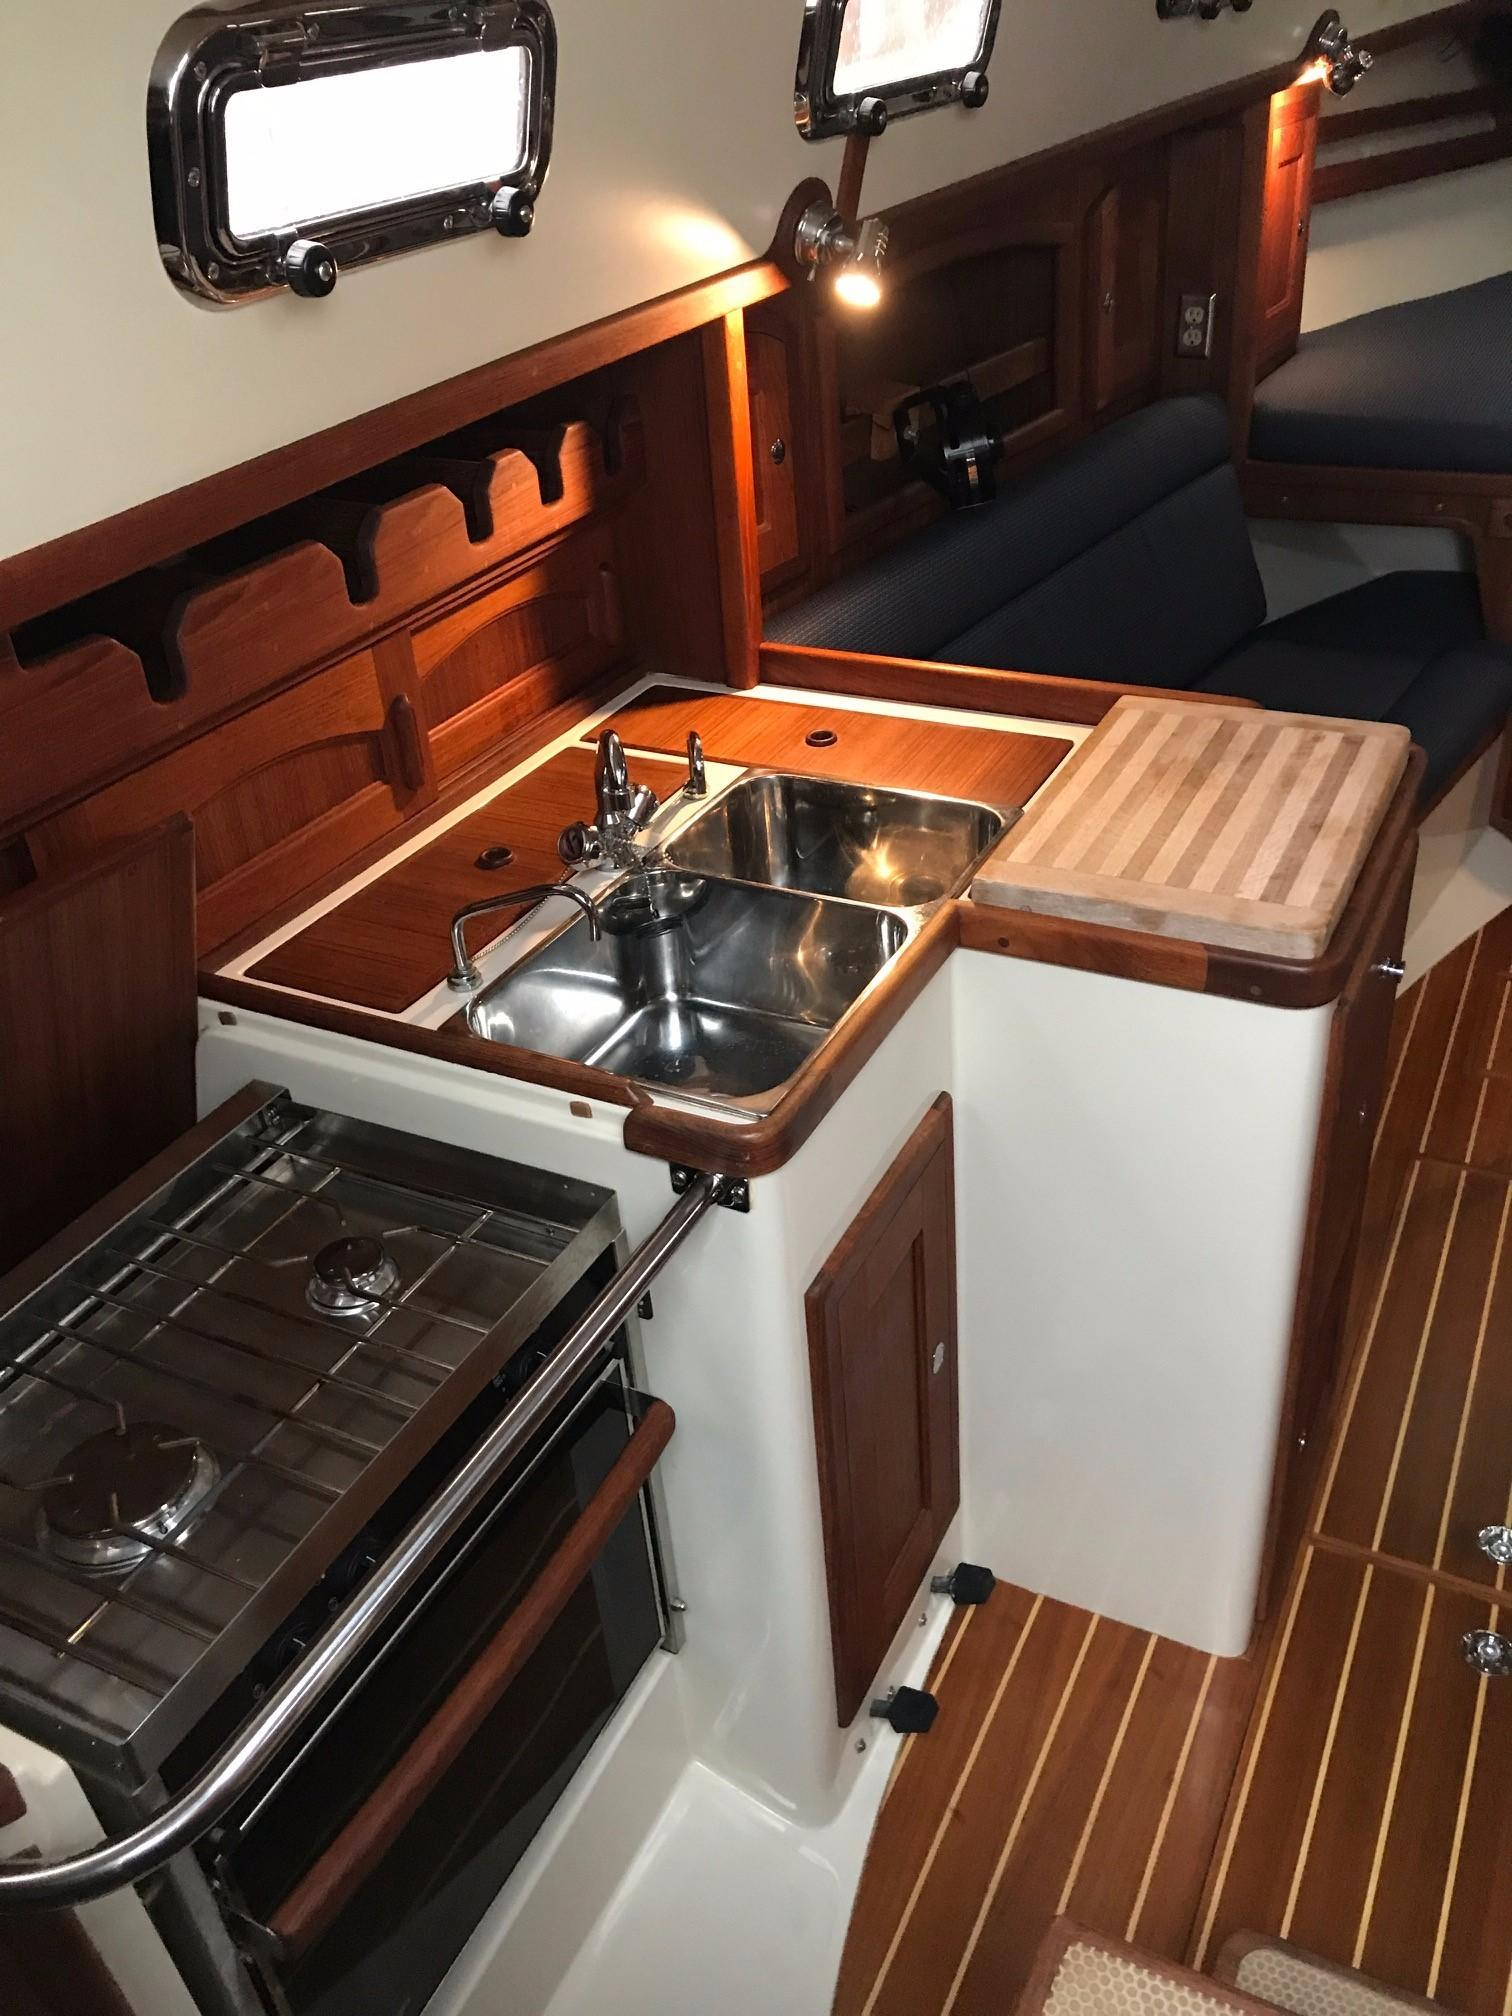 Bella Luna Pacific Seacraft 2006 31 Yacht For Sale In Us Install A Gfci Ground Fault Circuit Interrupter Kitchen Delight